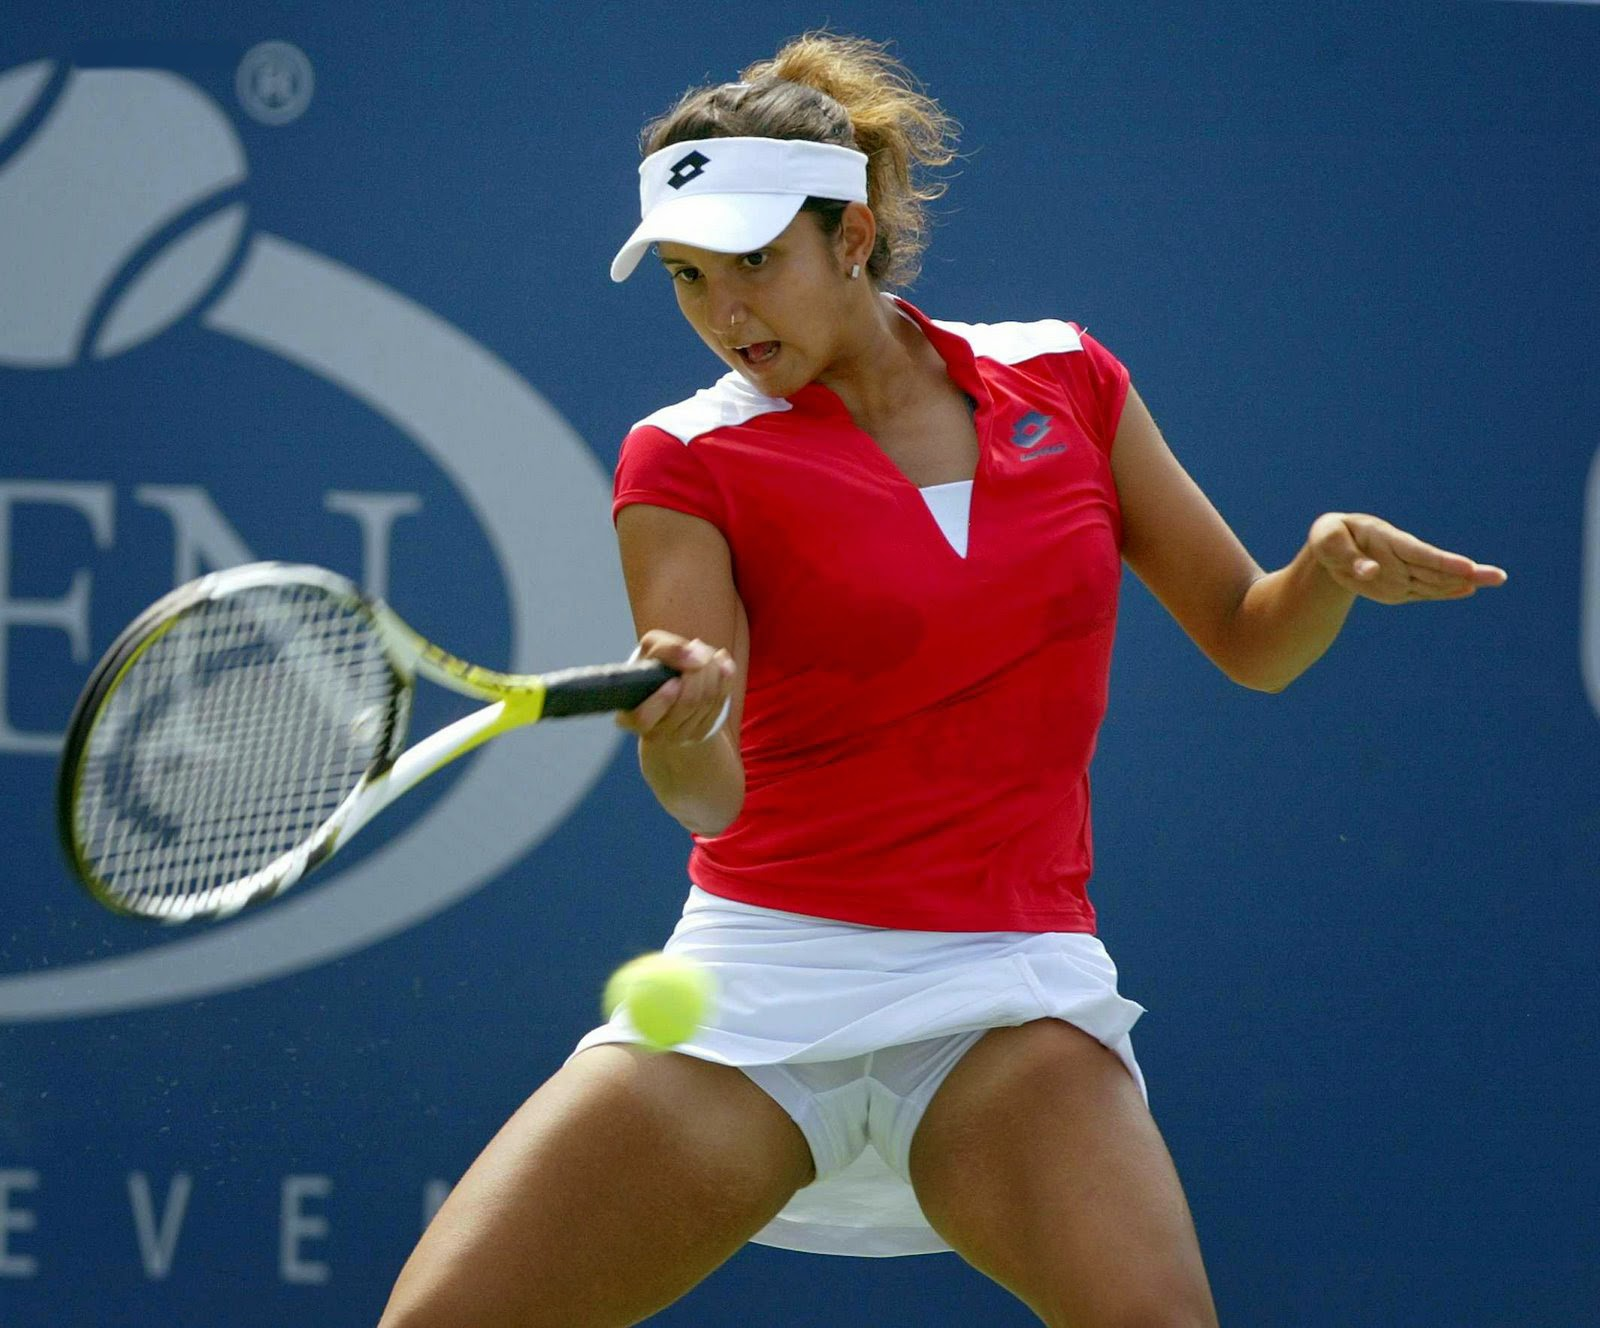 16 best Women playing sports in the nude images on